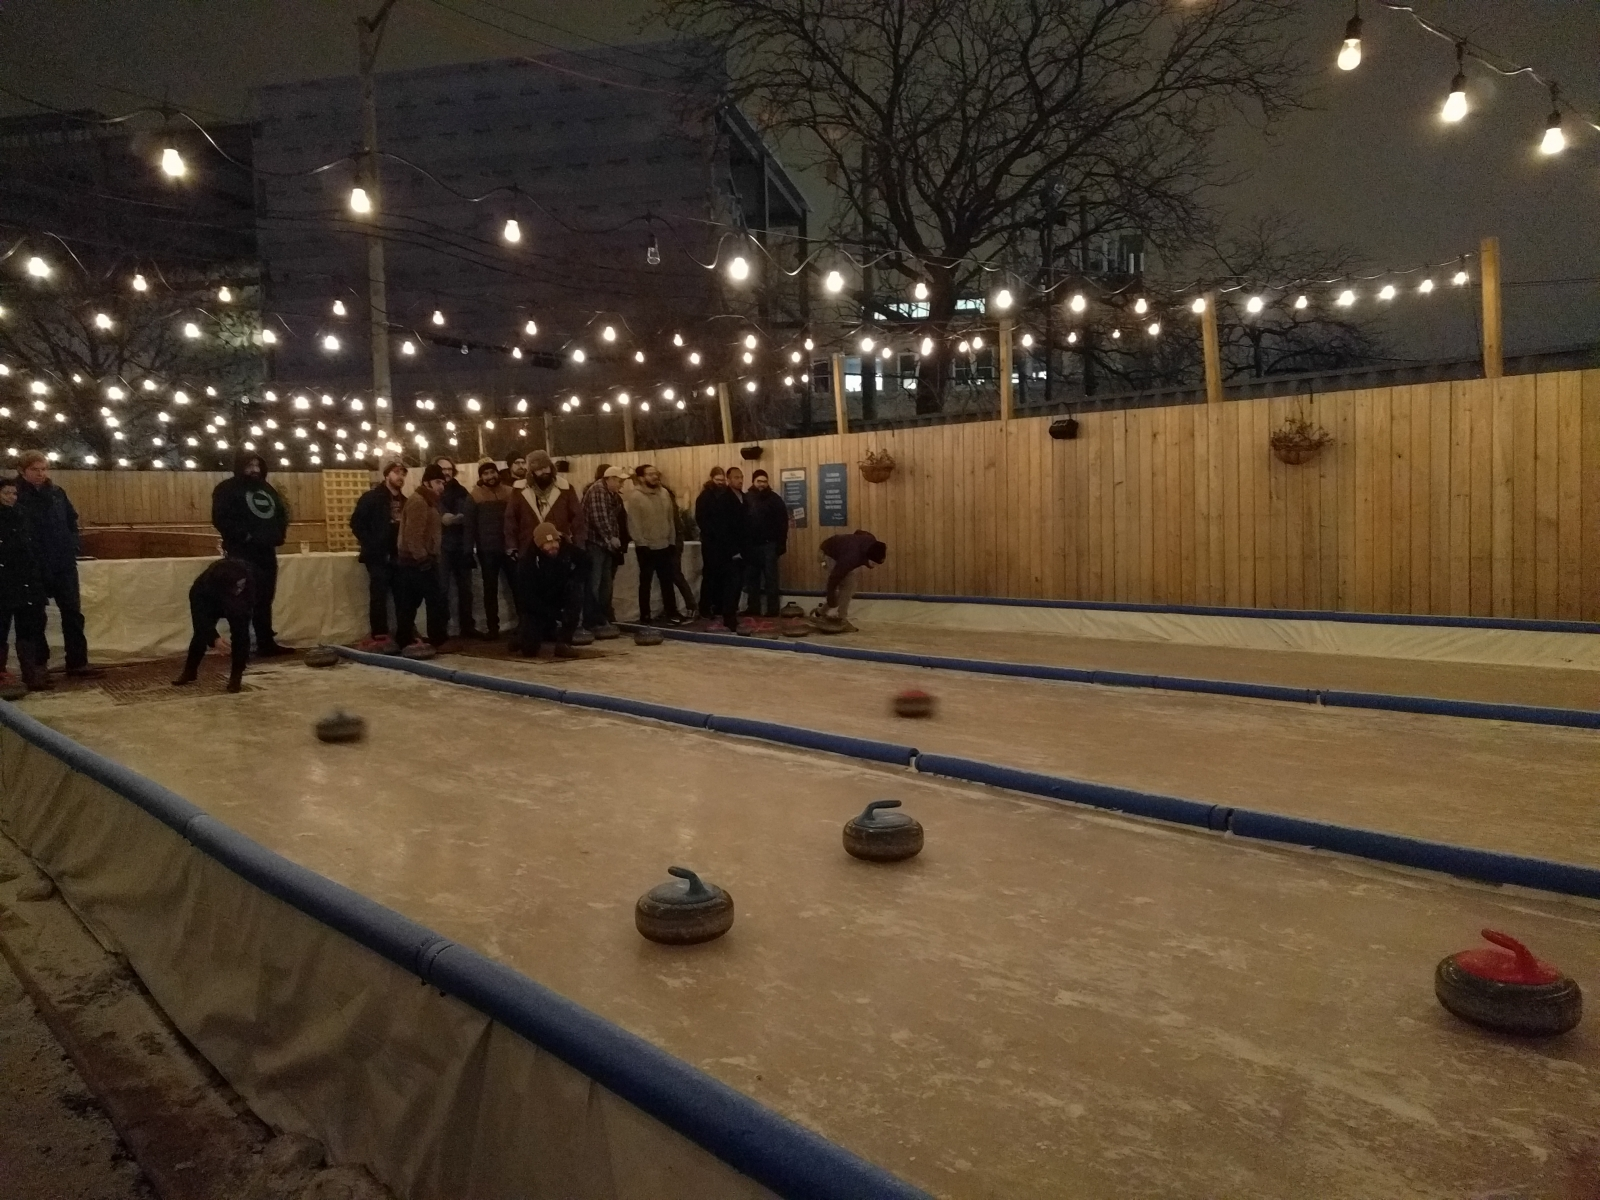 Curling in the winter. Bocce in the summer.